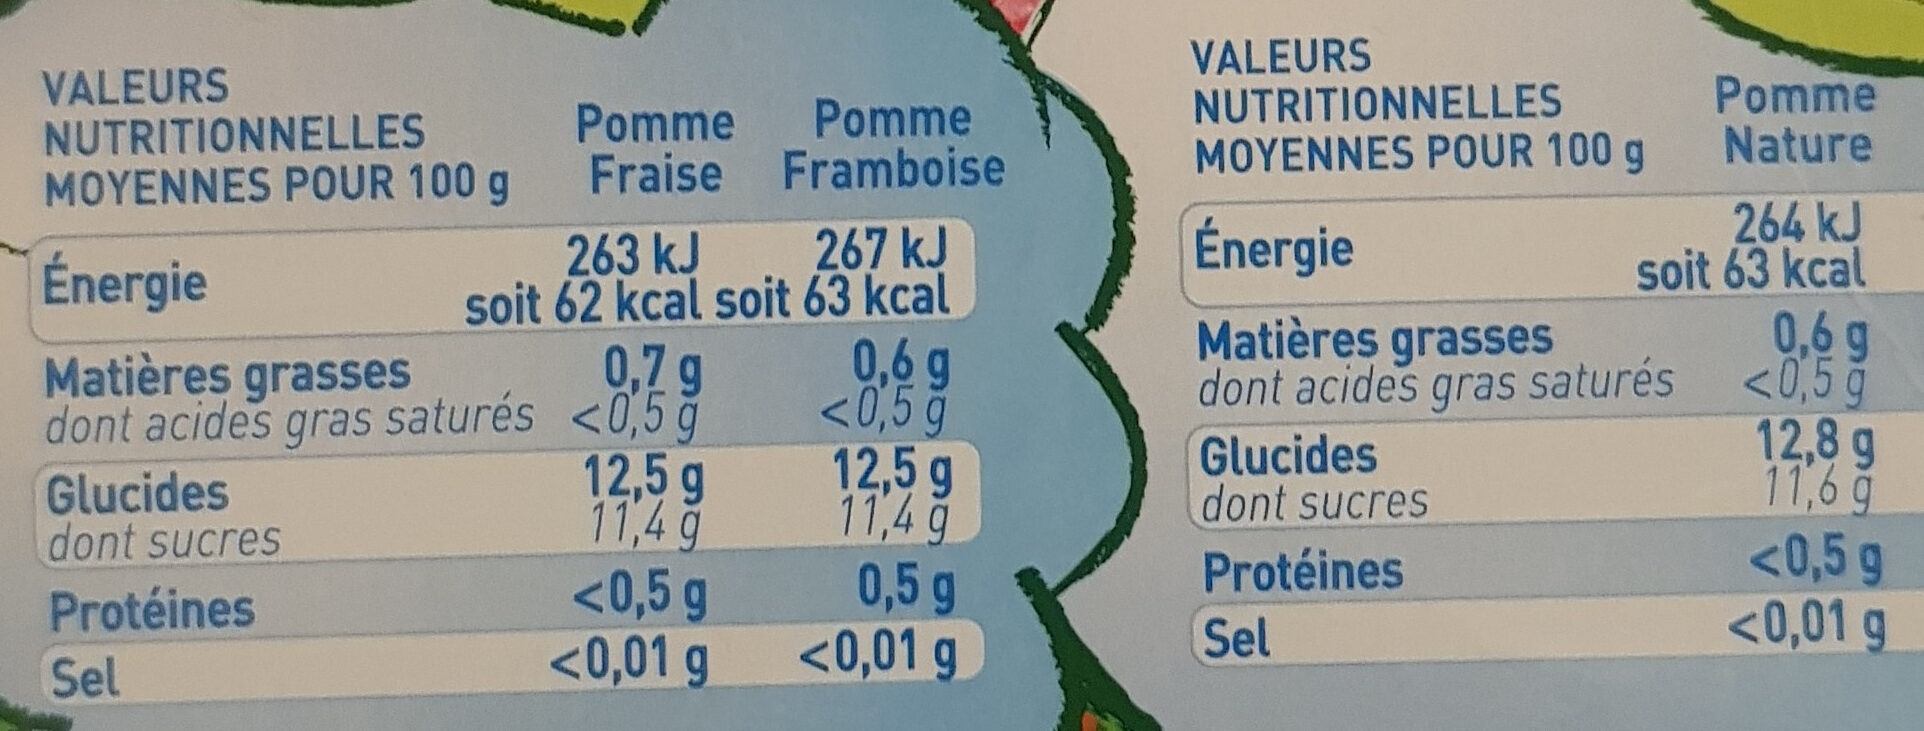 Pom'potes - Nutrition facts